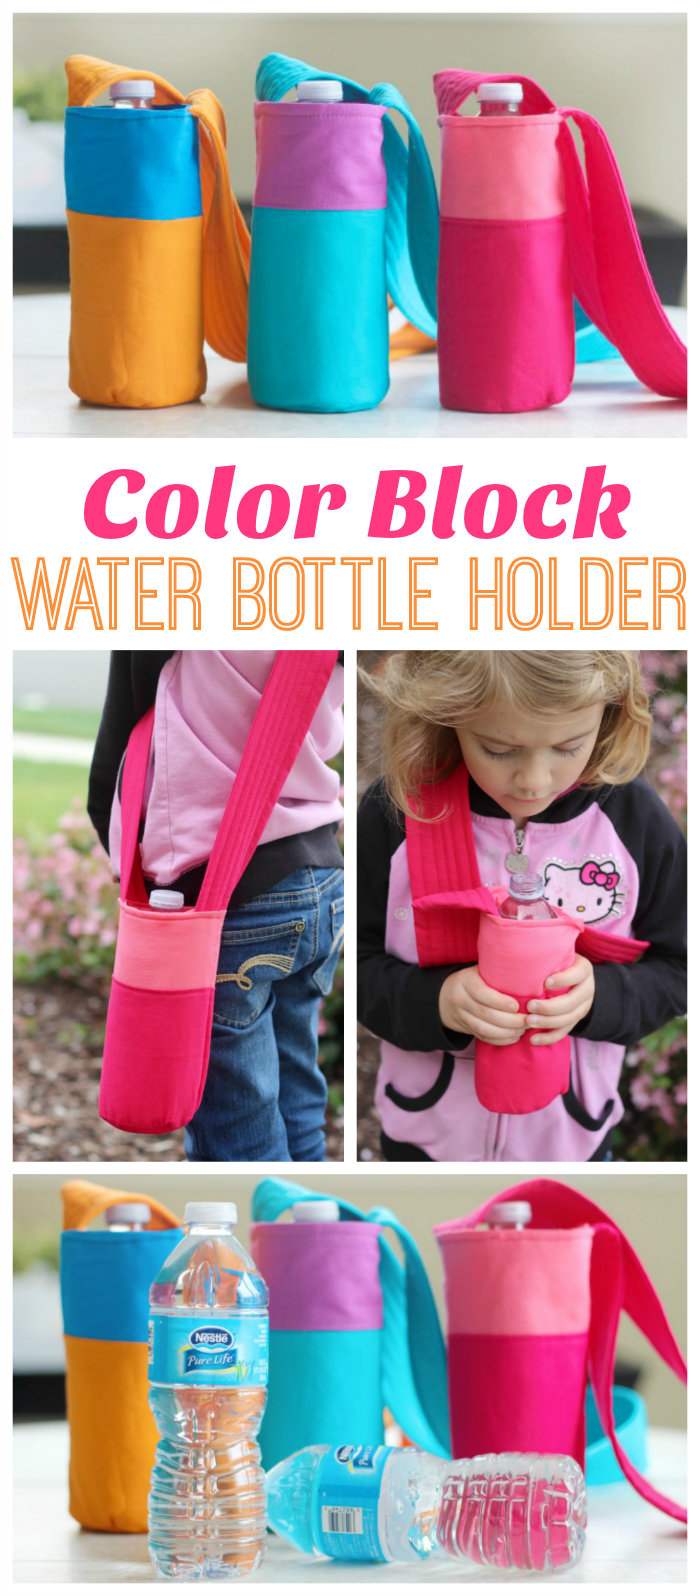 Color Block Fabric Water Bottle Holder from Gluesticks